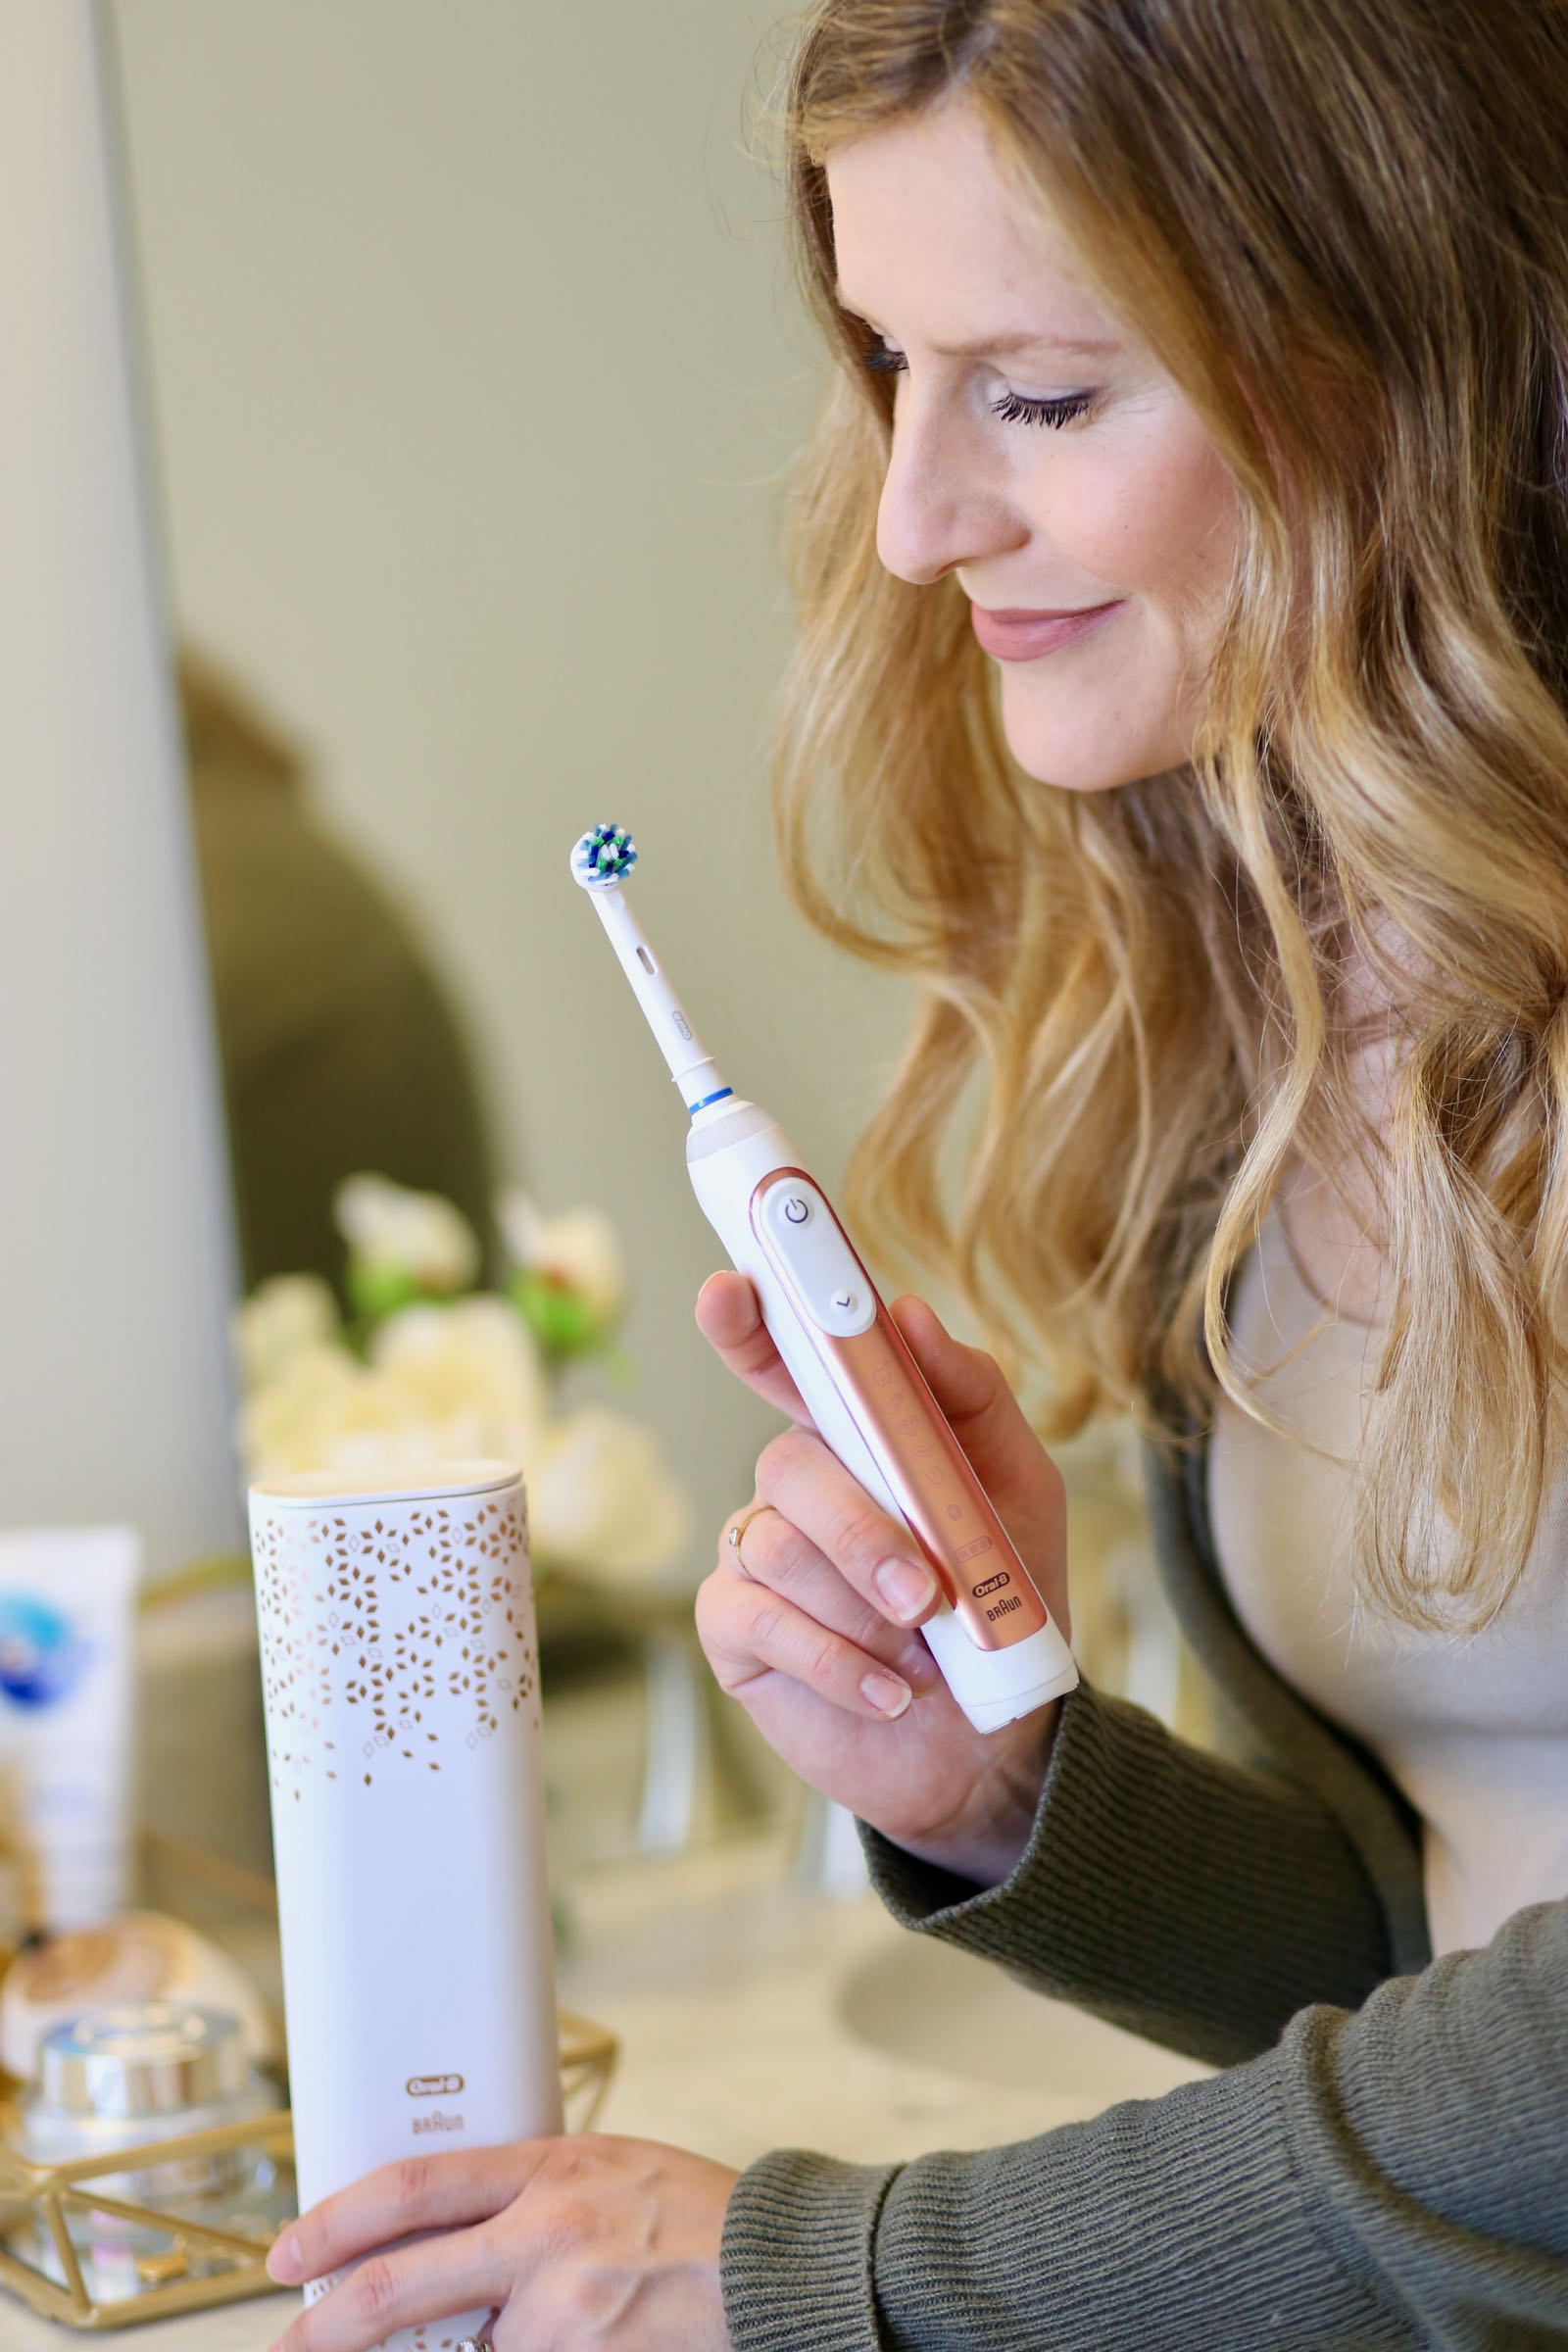 Enter for your chance to win the gorgeous new Oral-B GENIUS Rose Gold 8000 rechargeable toothbrush! TheBudgetBabe.com